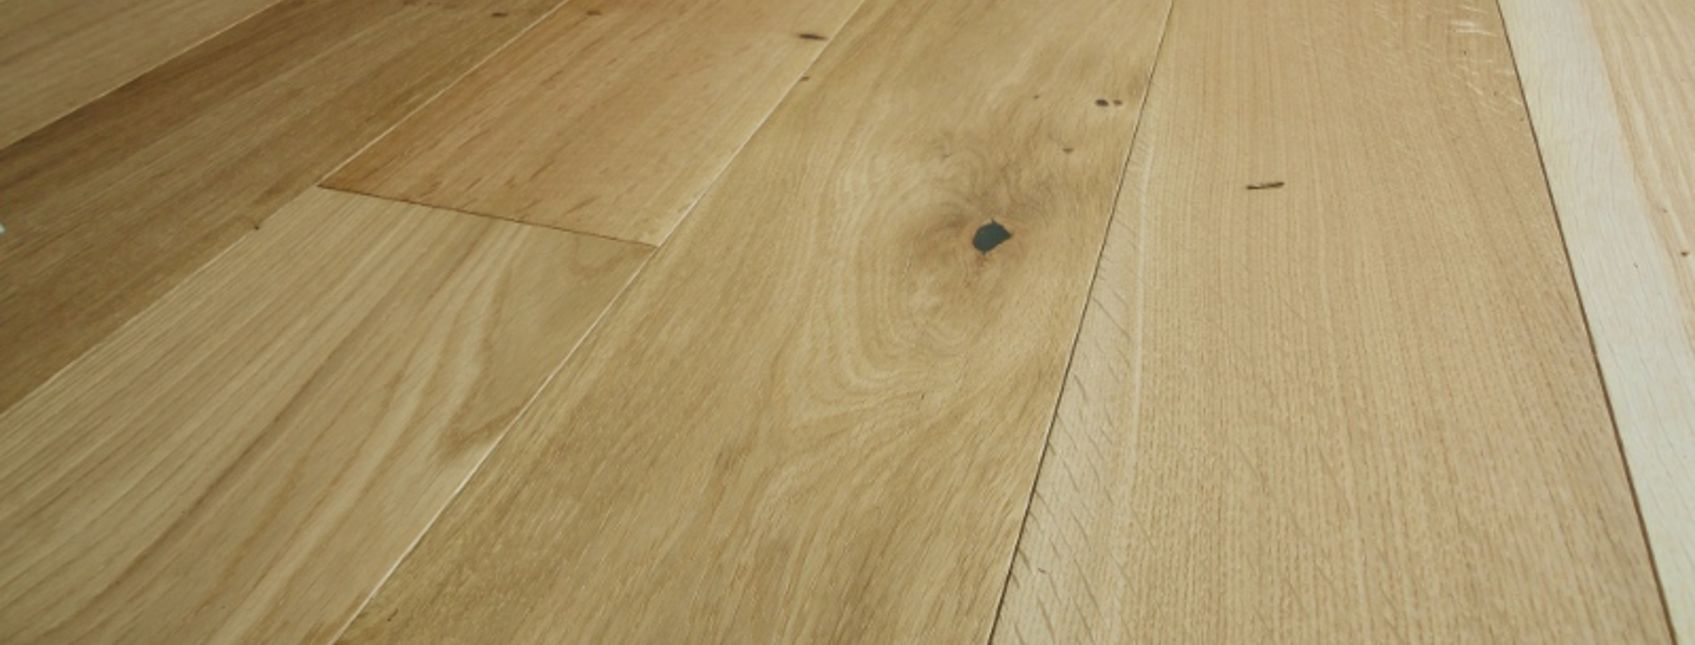 Country untreated engineered oak flooring